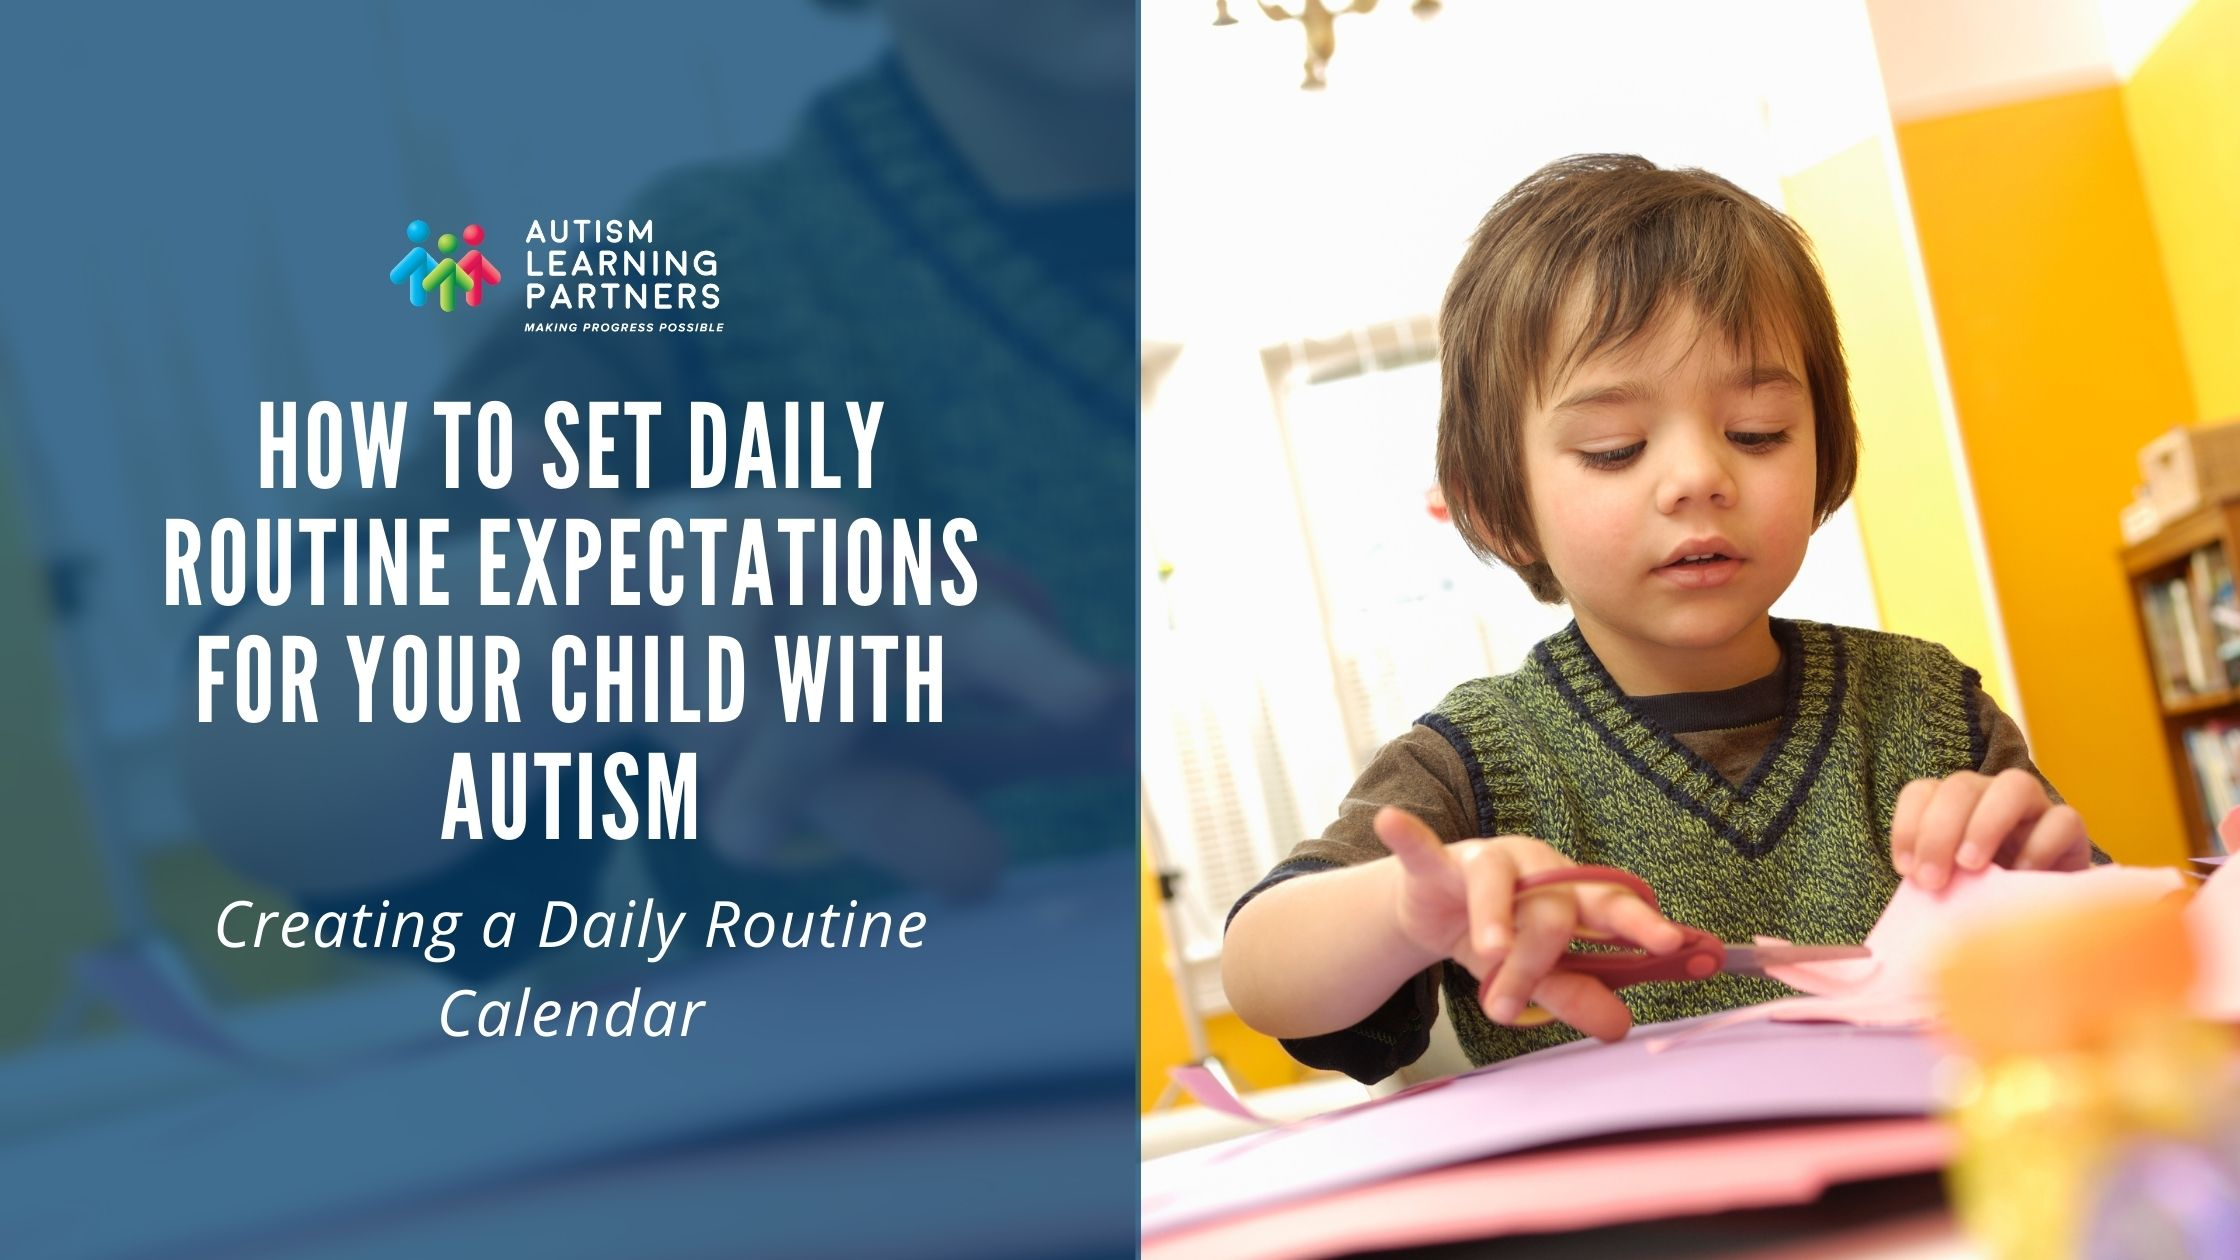 How to Set Daily Routine Expectations for your Child with Autism – Creating a Daily Routine Calendar